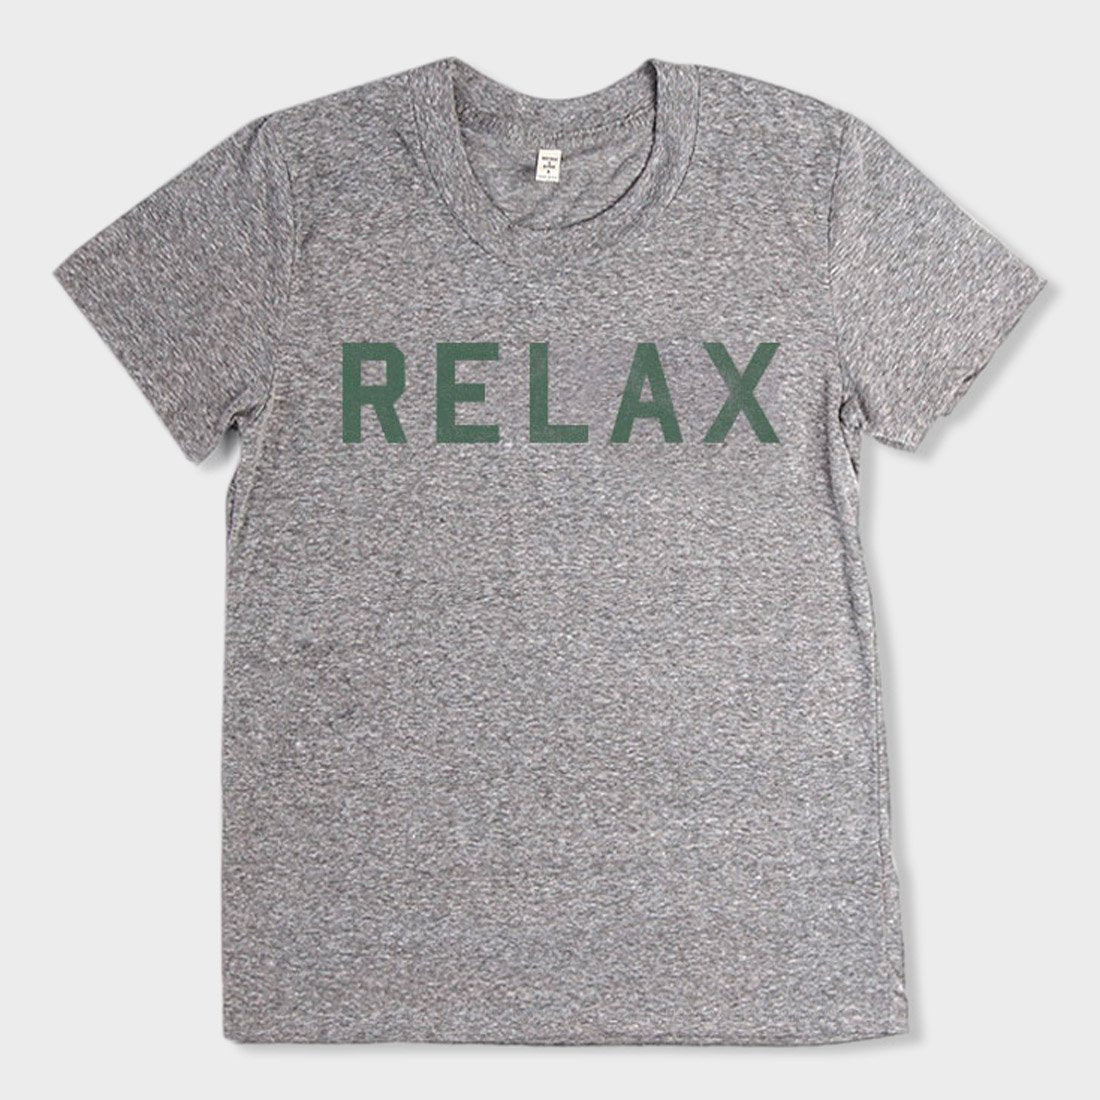 Bridge & Burn Women's Relax T-Shirt Dark Heather